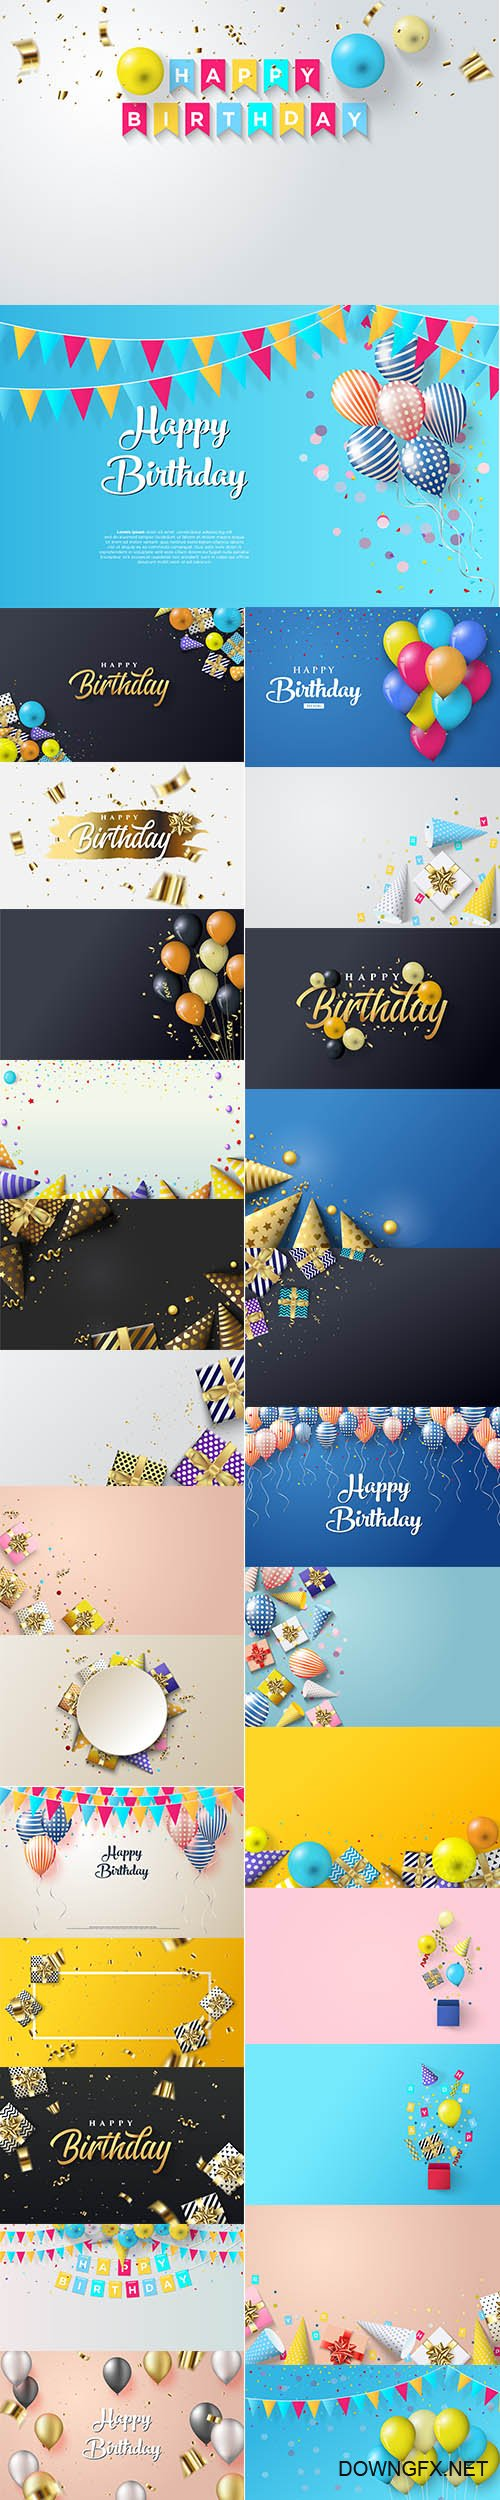 Birthday Party with Gift Box Premium Illustrations Set